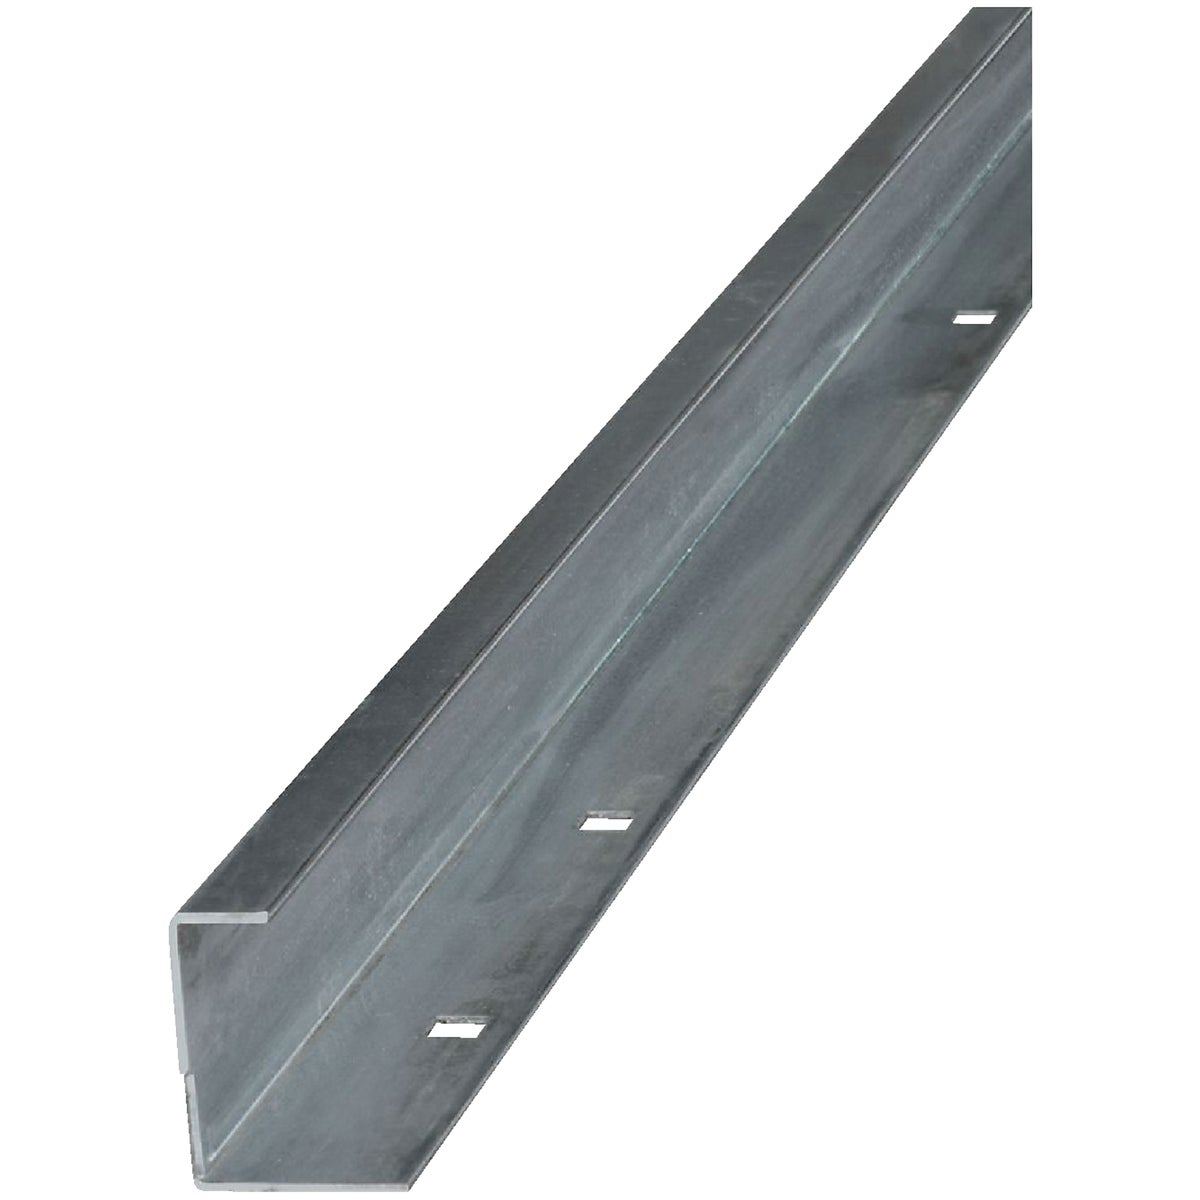 6004 10  GLV GUIDE RAIL - N160-507 by National Mfg Co